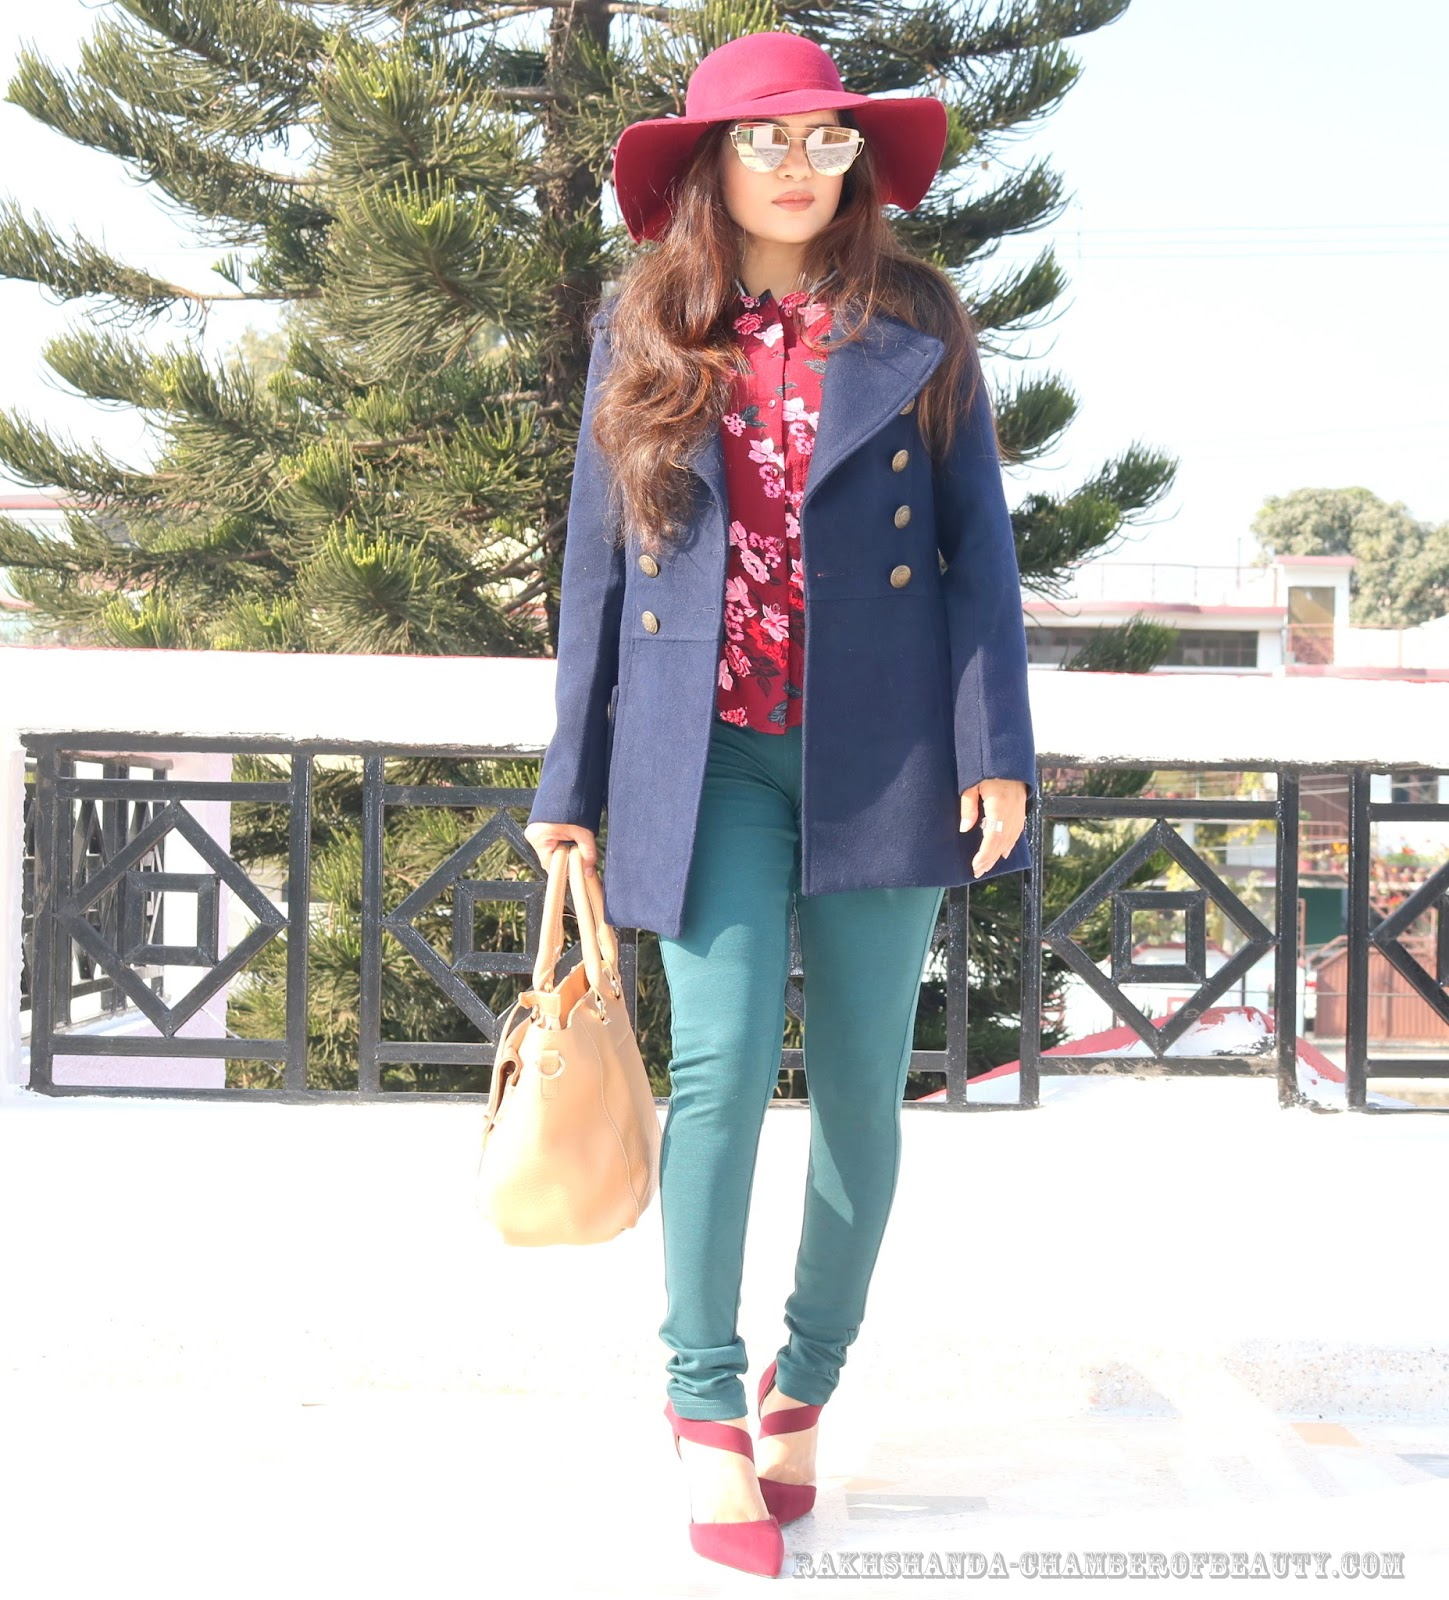 Fashion blogger/rakhshanda-chamberofbeauty/Max fashion/how to style printed shirt in winter